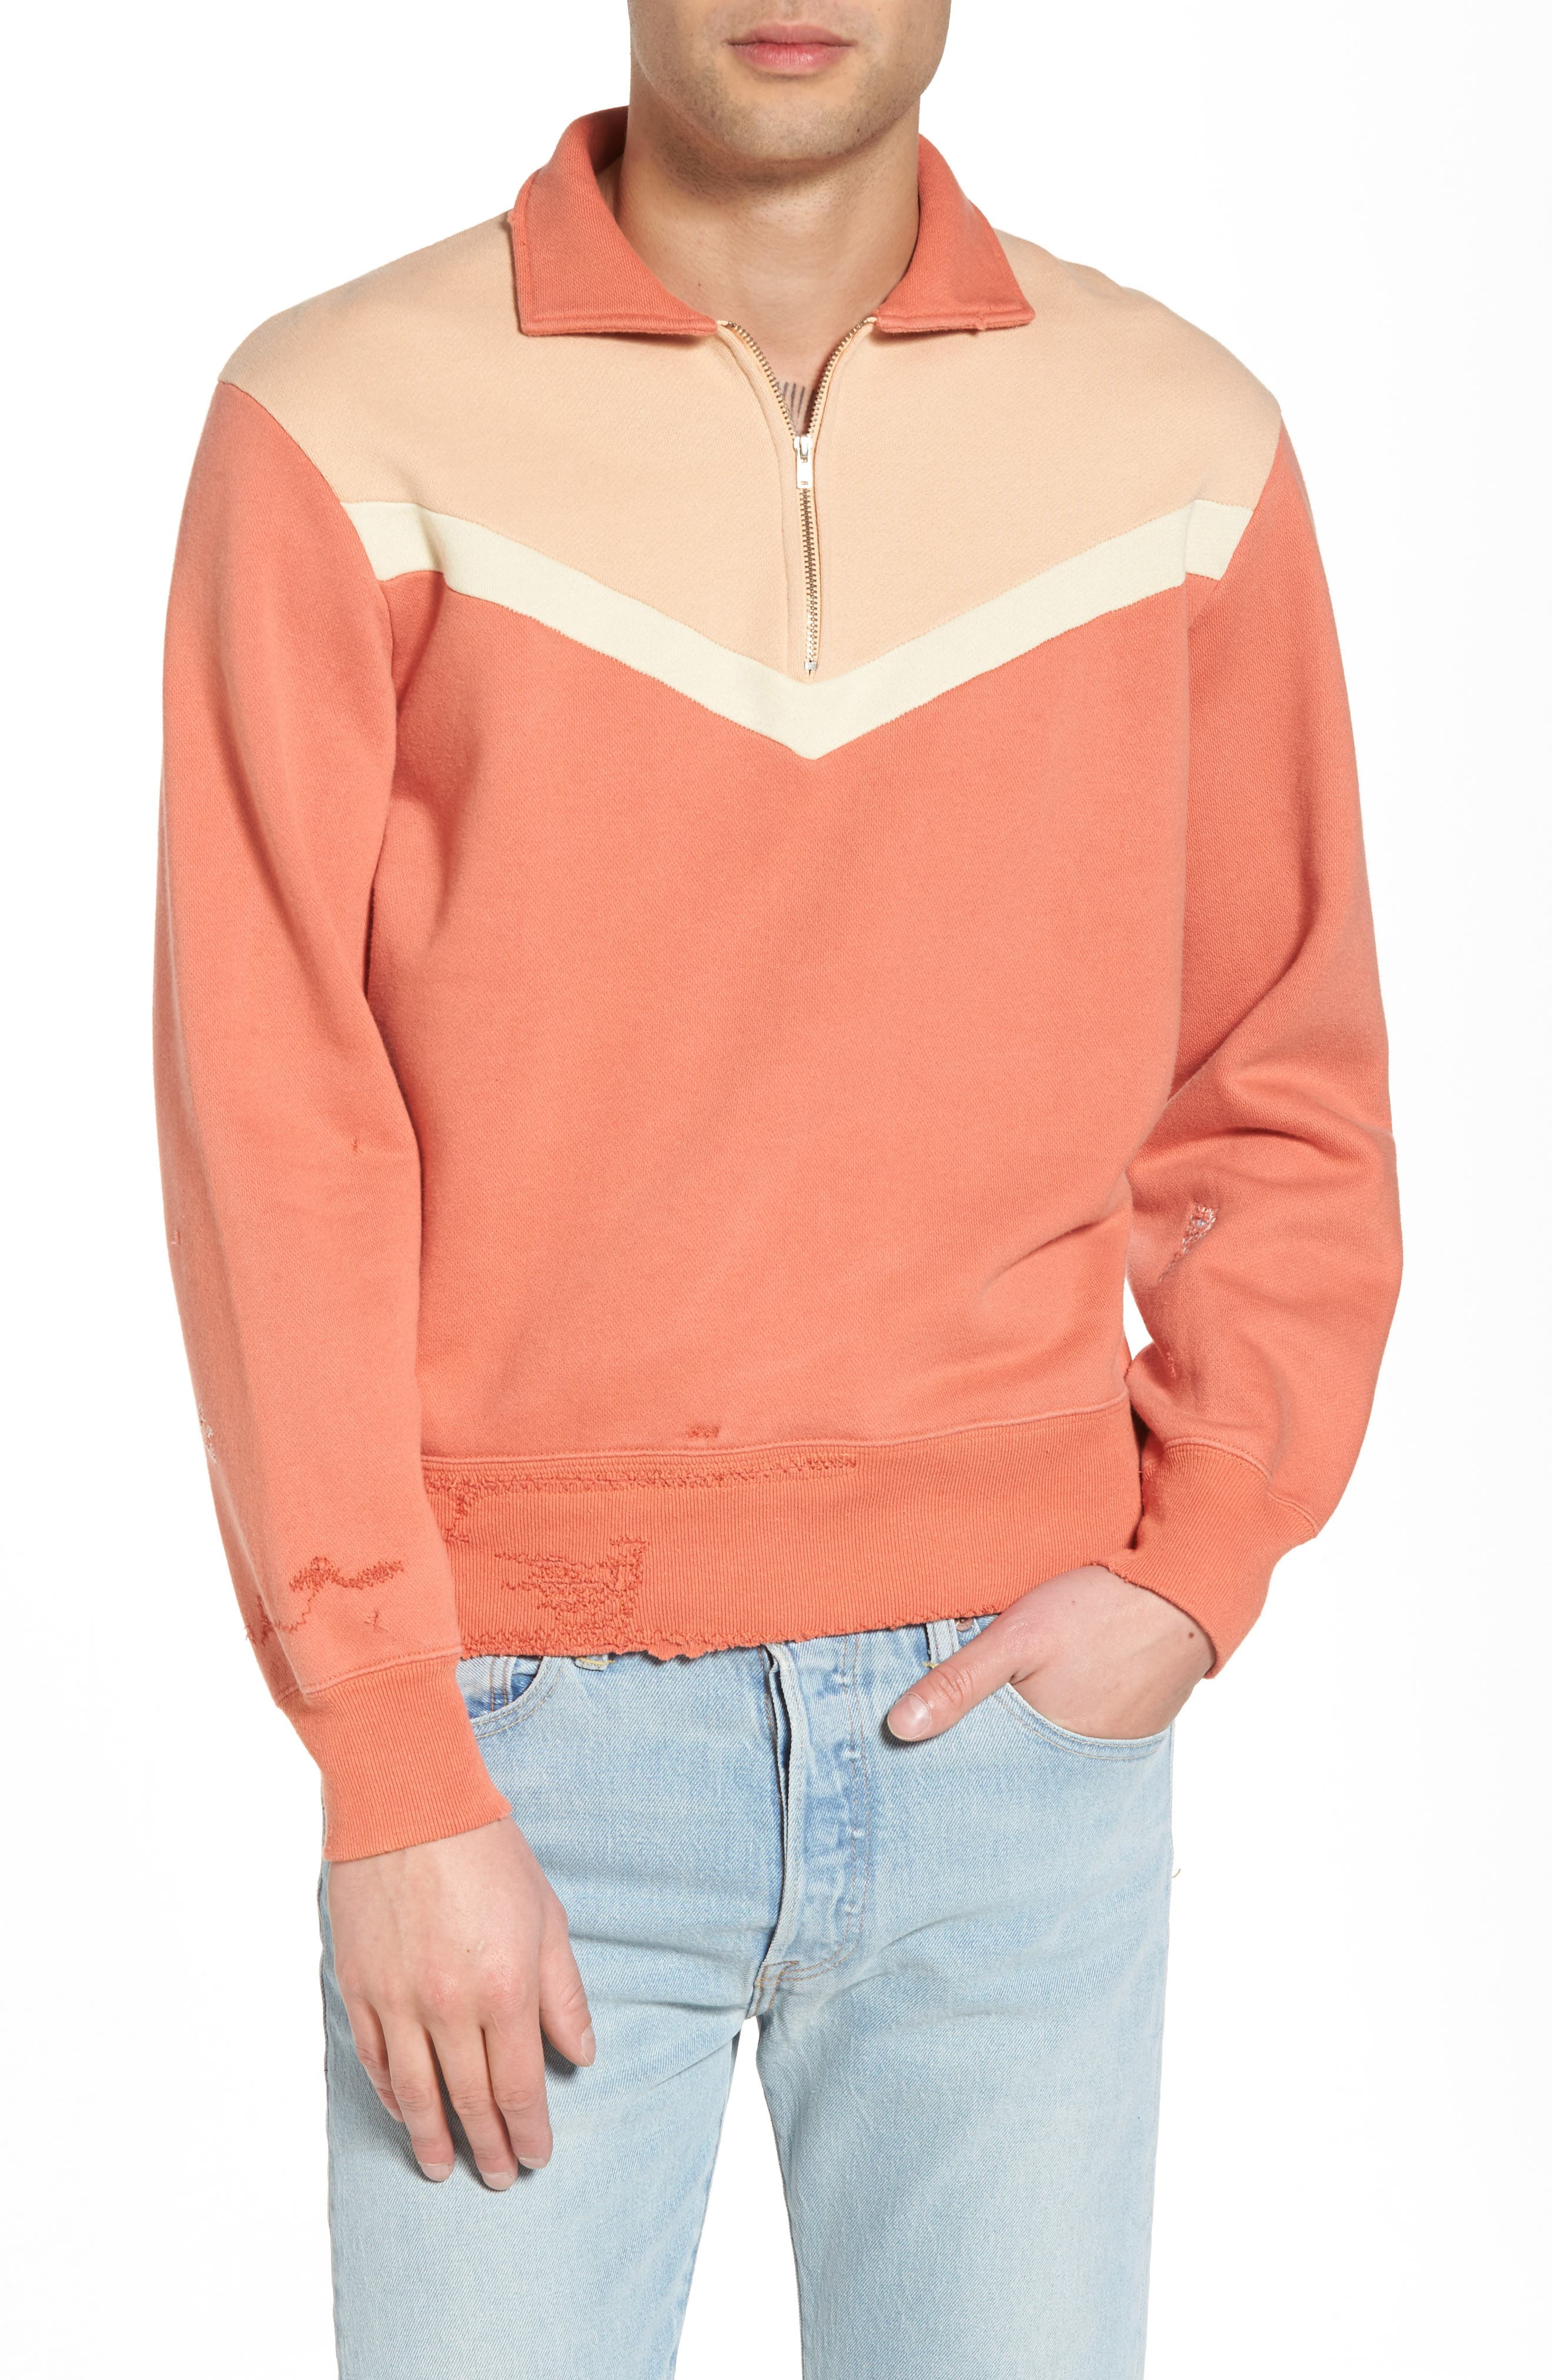 Alternate Image 1 Selected - Levi's® Vintage Clothing Colorblocked Quarter Zip Pullover